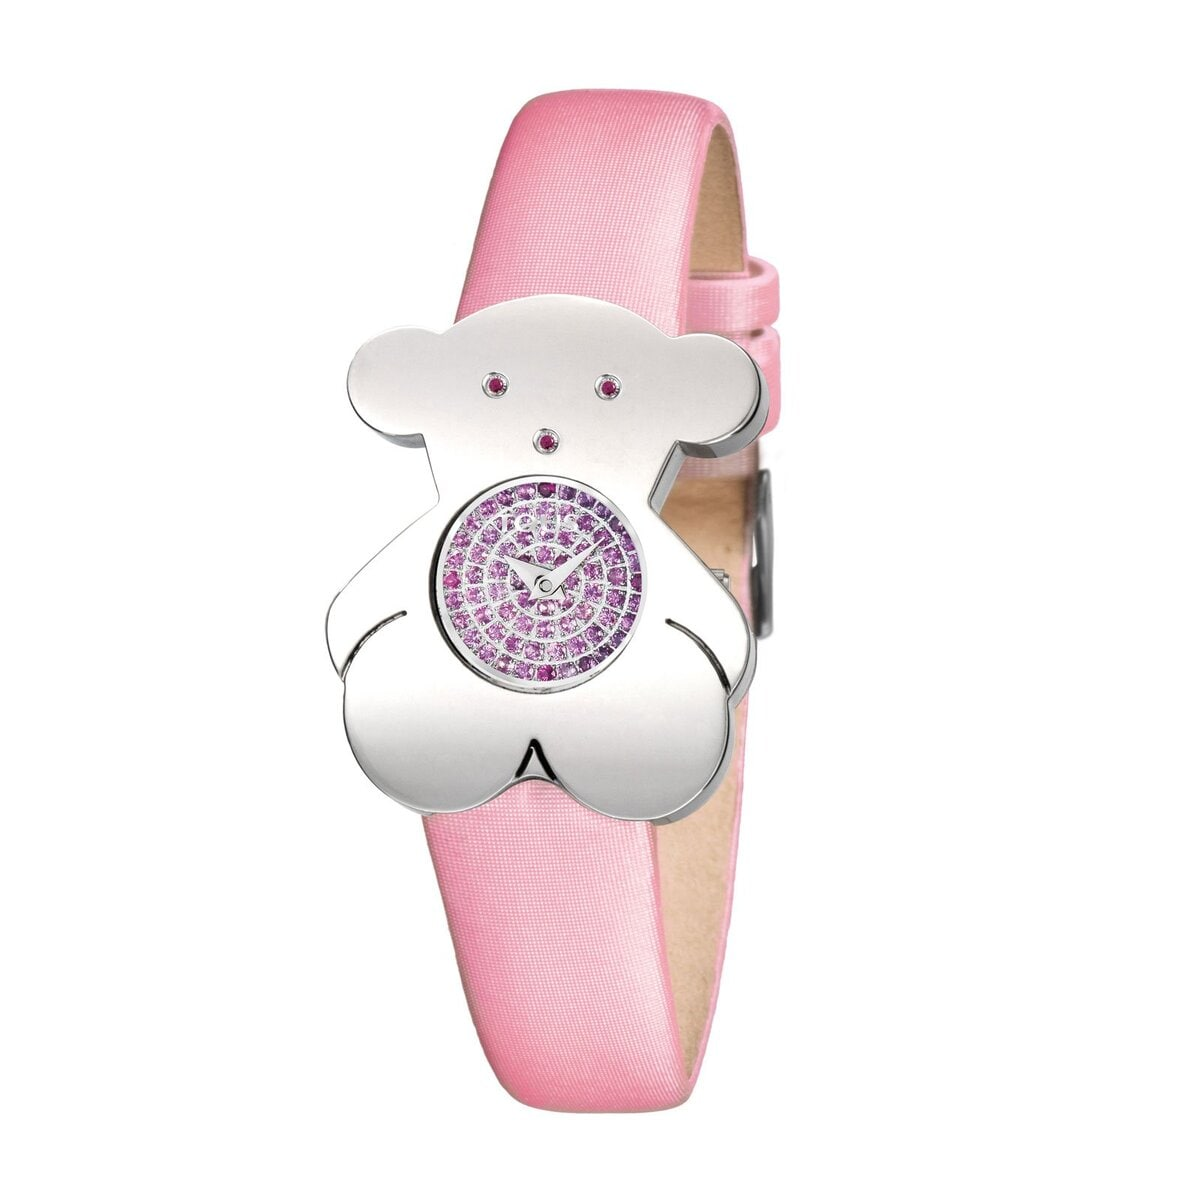 Steel Tousy Watch with pink sapphires and pink Satin strap